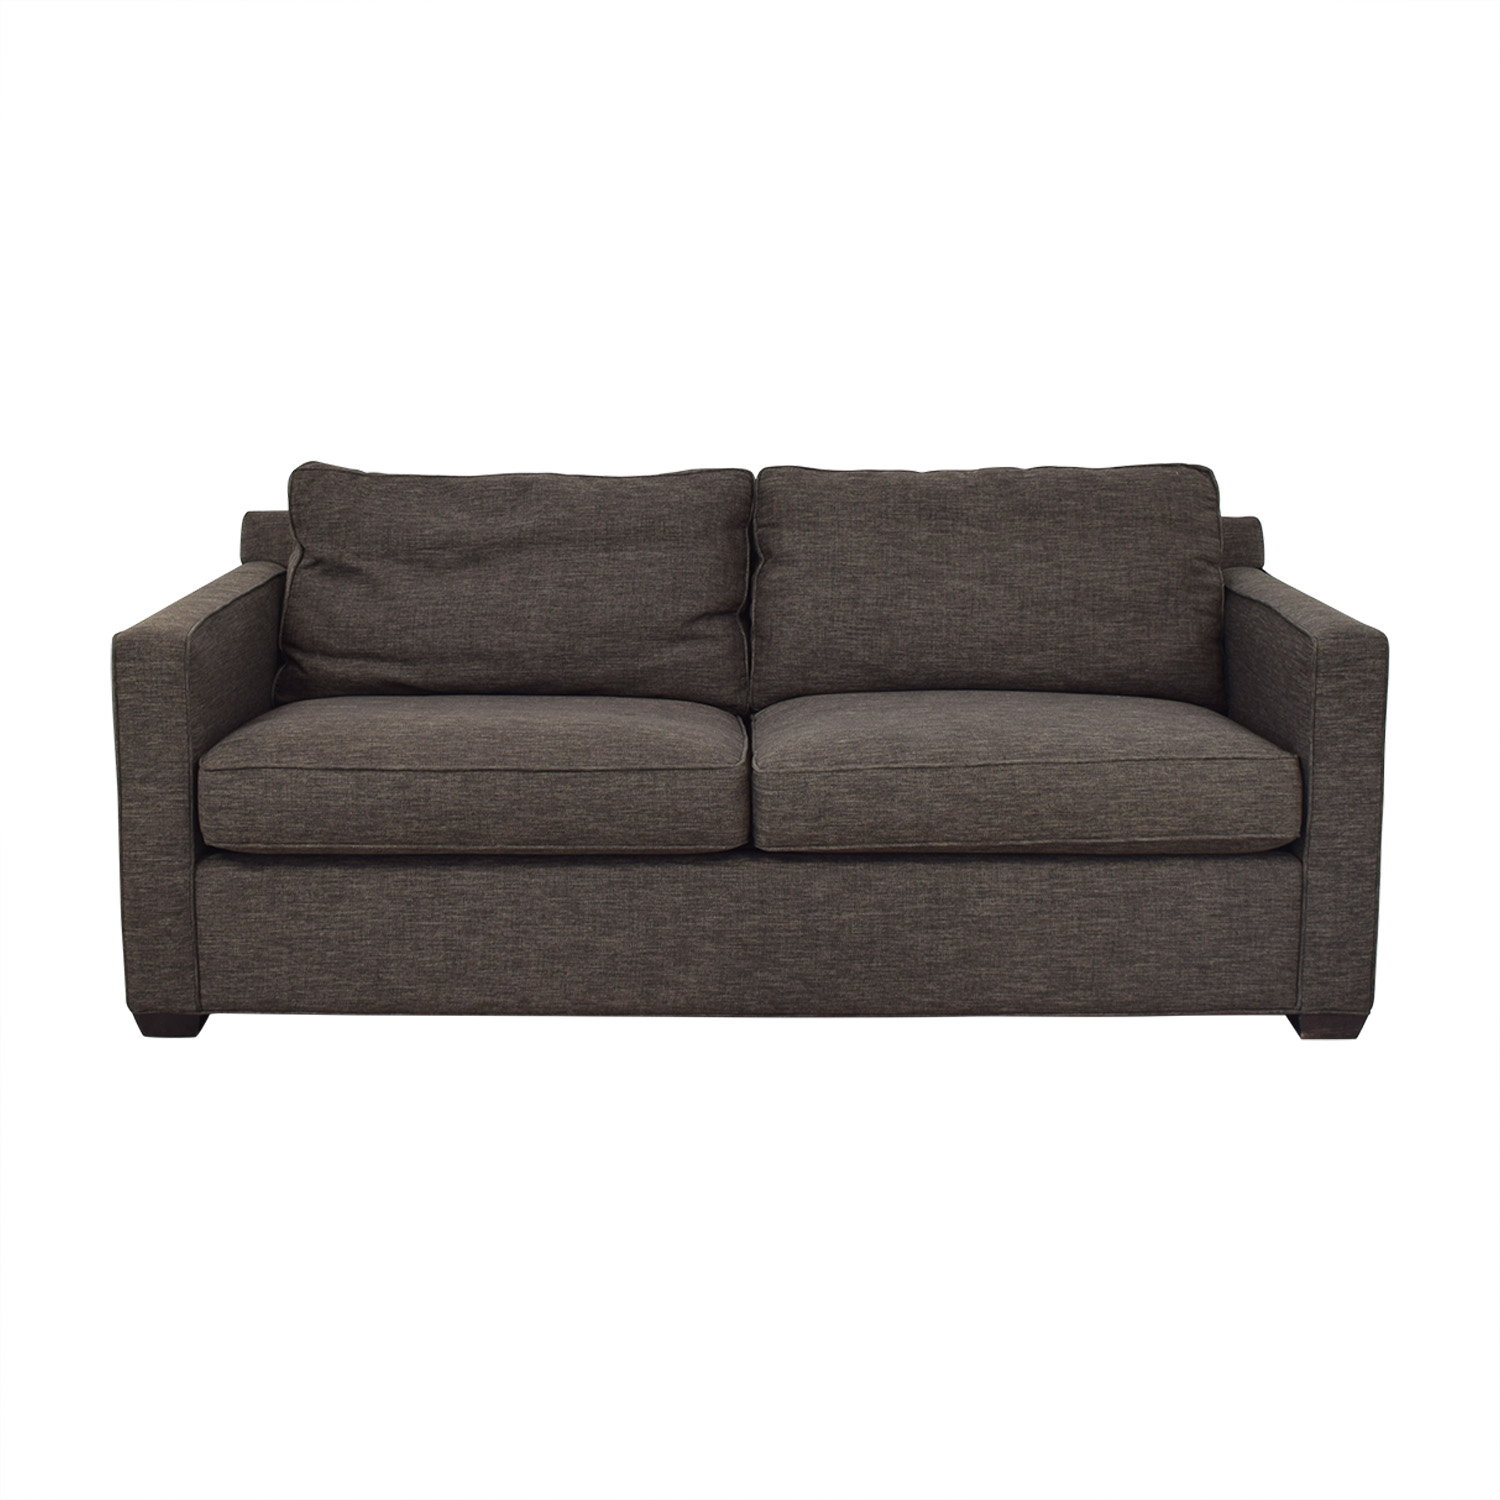 Crate & Barrel Crate & Barrel Barrett Track Arm Sofa on sale